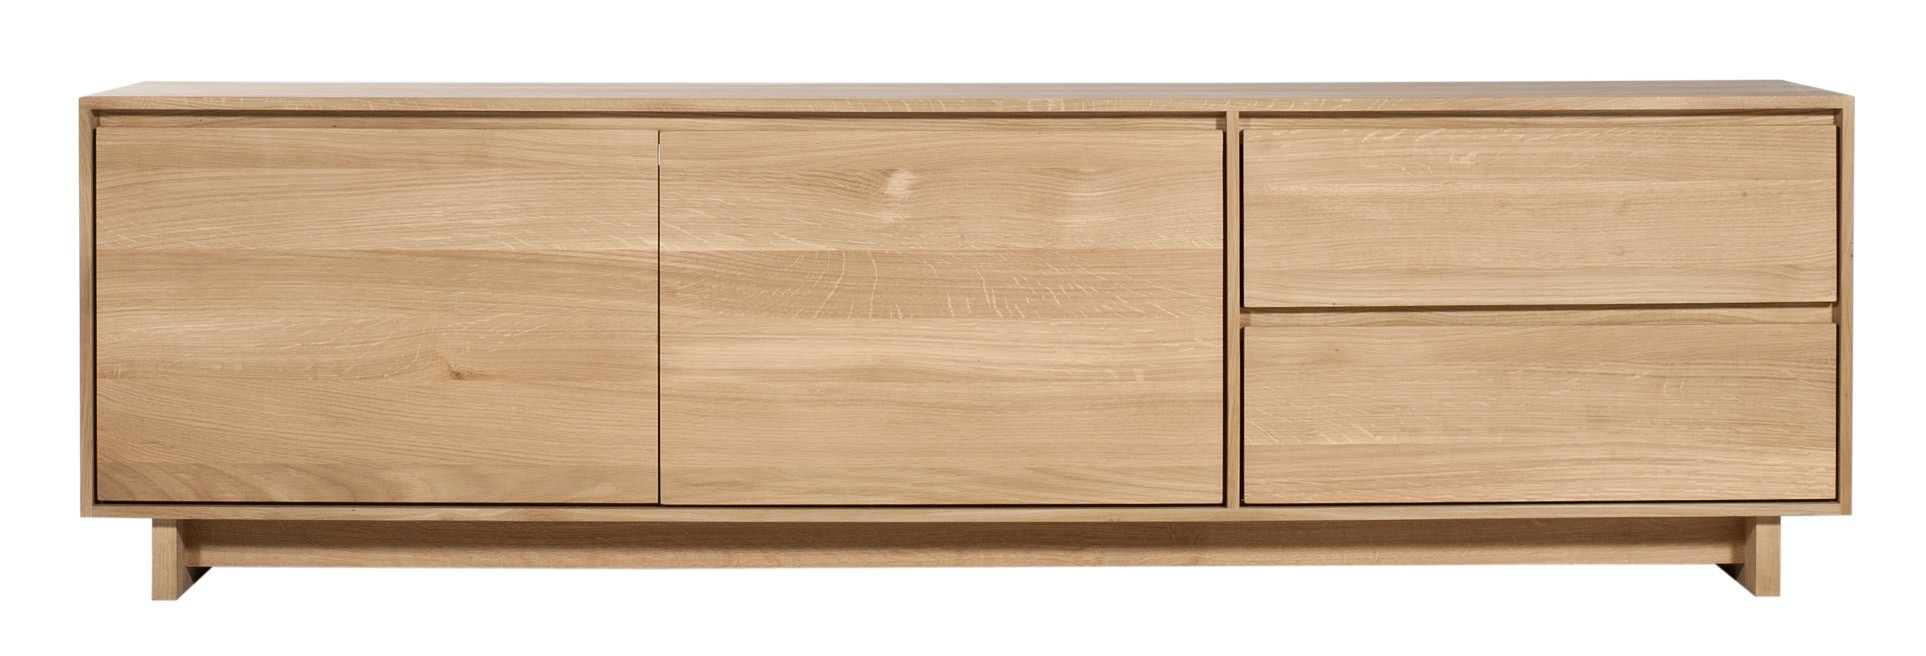 Meuble Tv Oak Wave D Ethnicraft 2 Porte 1 Porte Abattante 1  # Meuble Tv Bas Bois